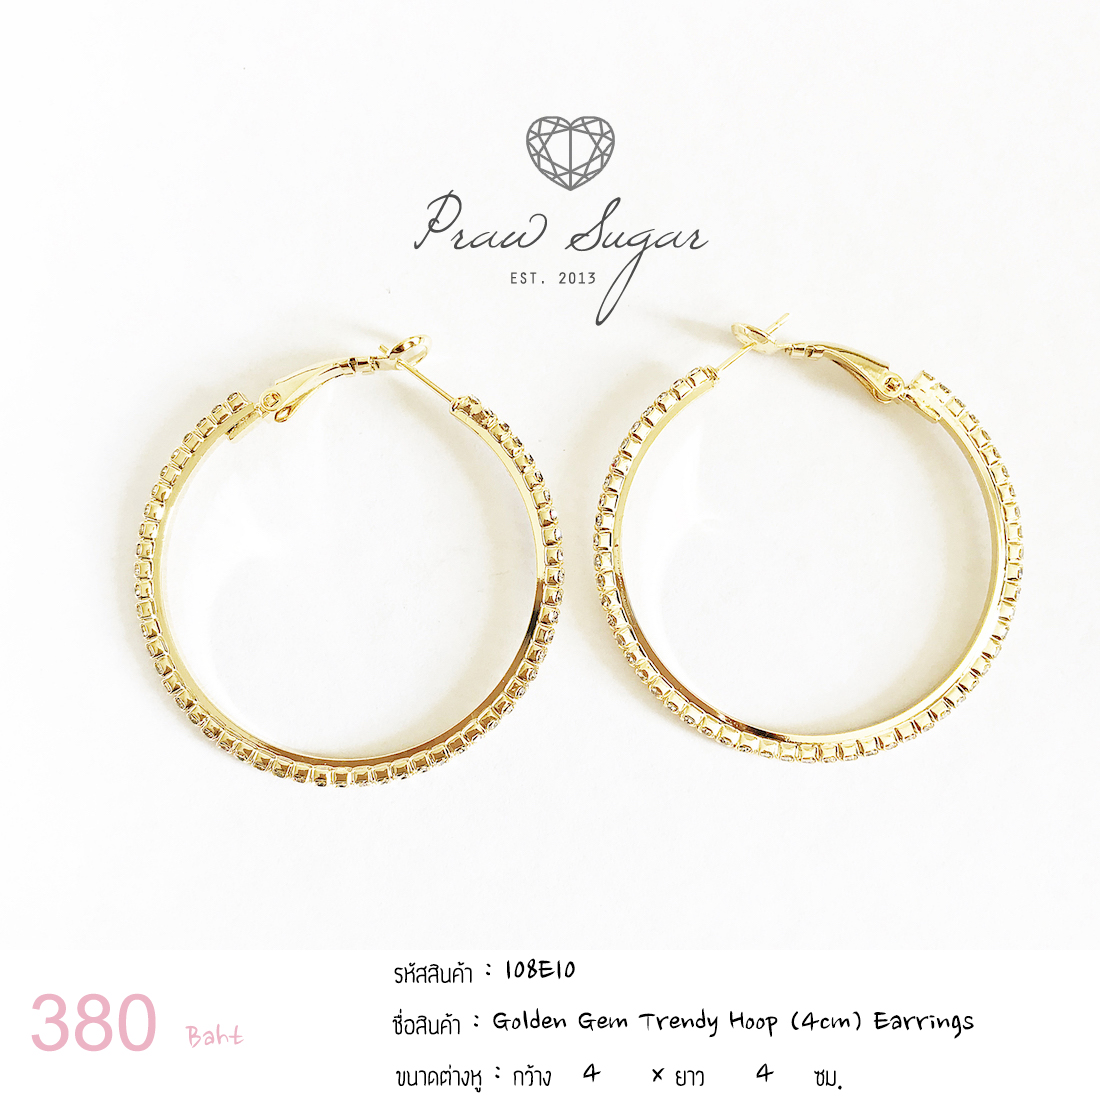 Golden Gem Trendy Hoop (4cm) Earrings